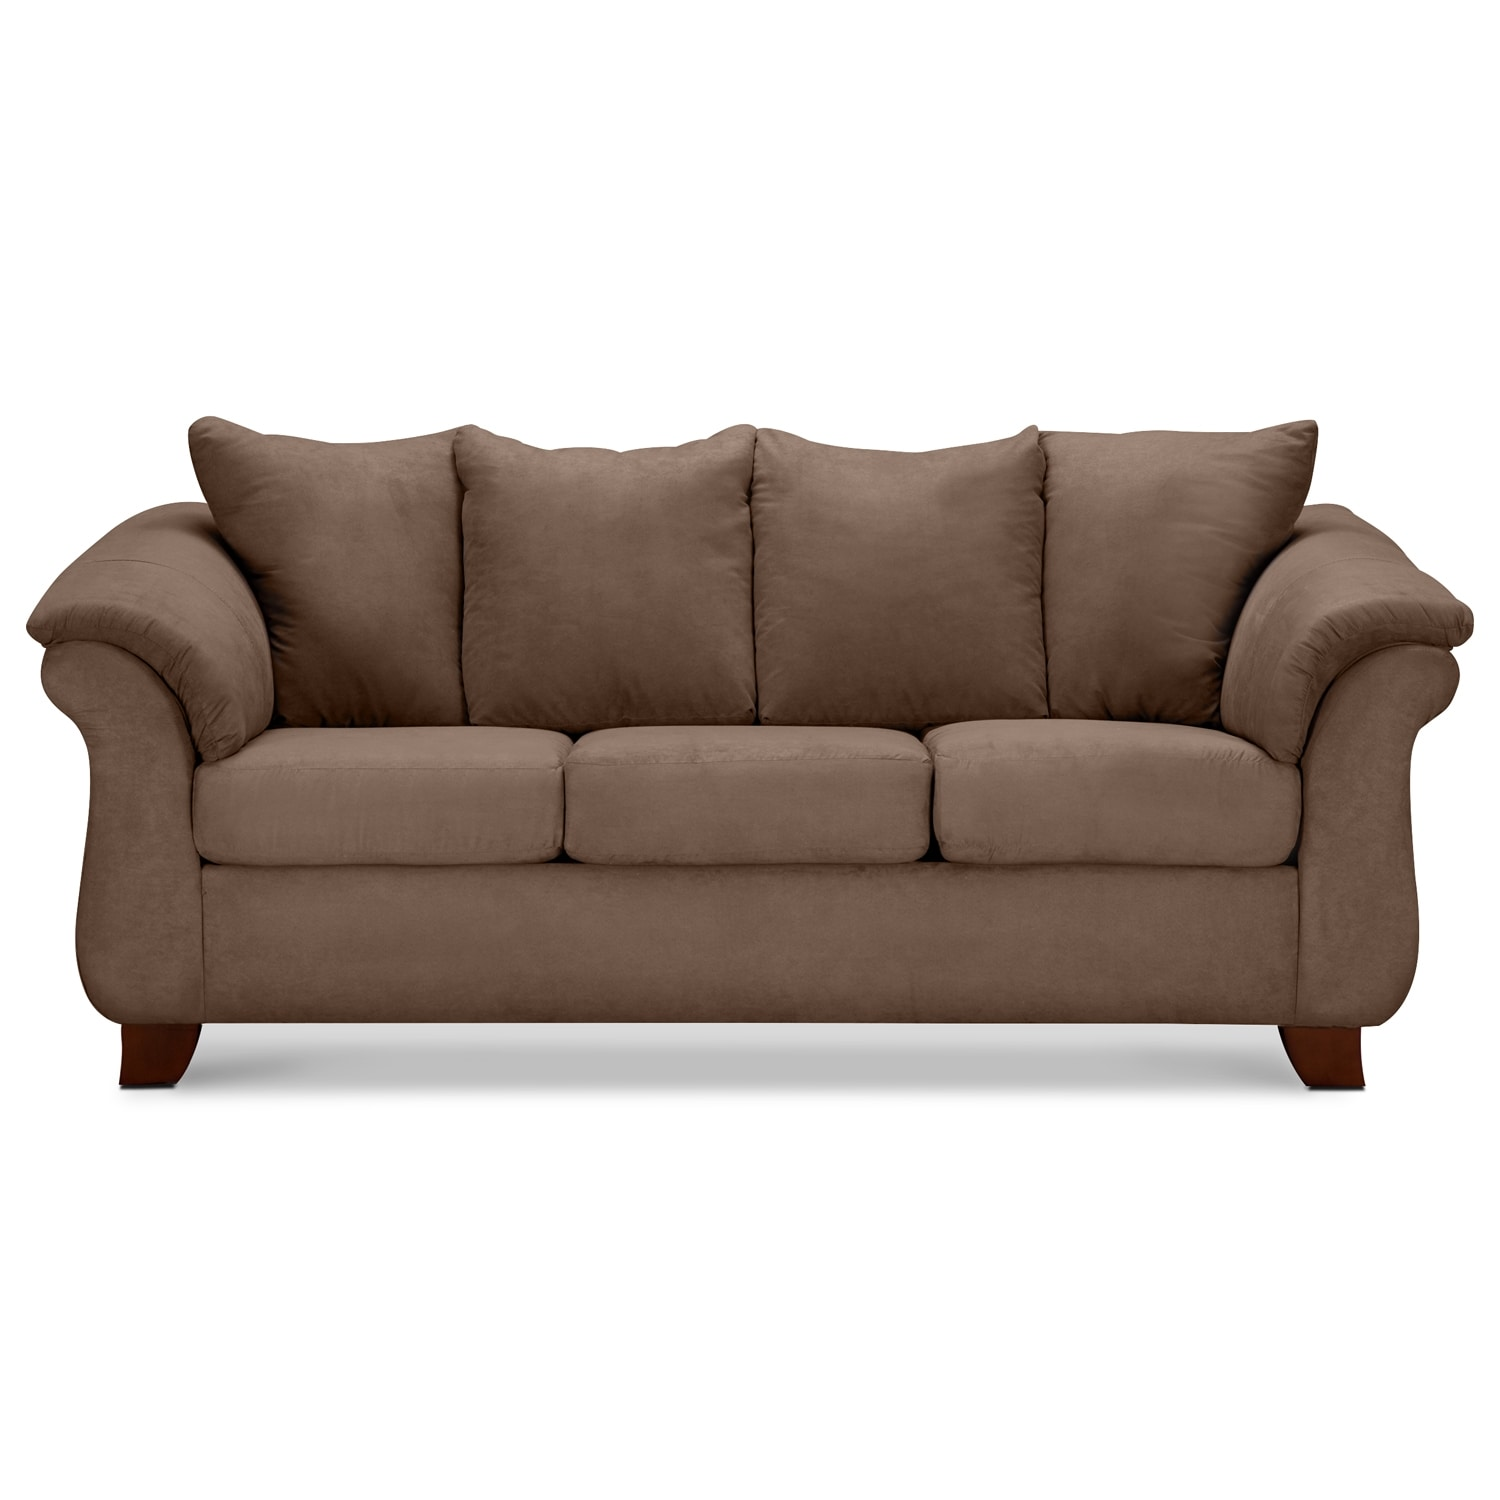 Sofa Taupe Adrian Taupe Sofa Value City Furniture